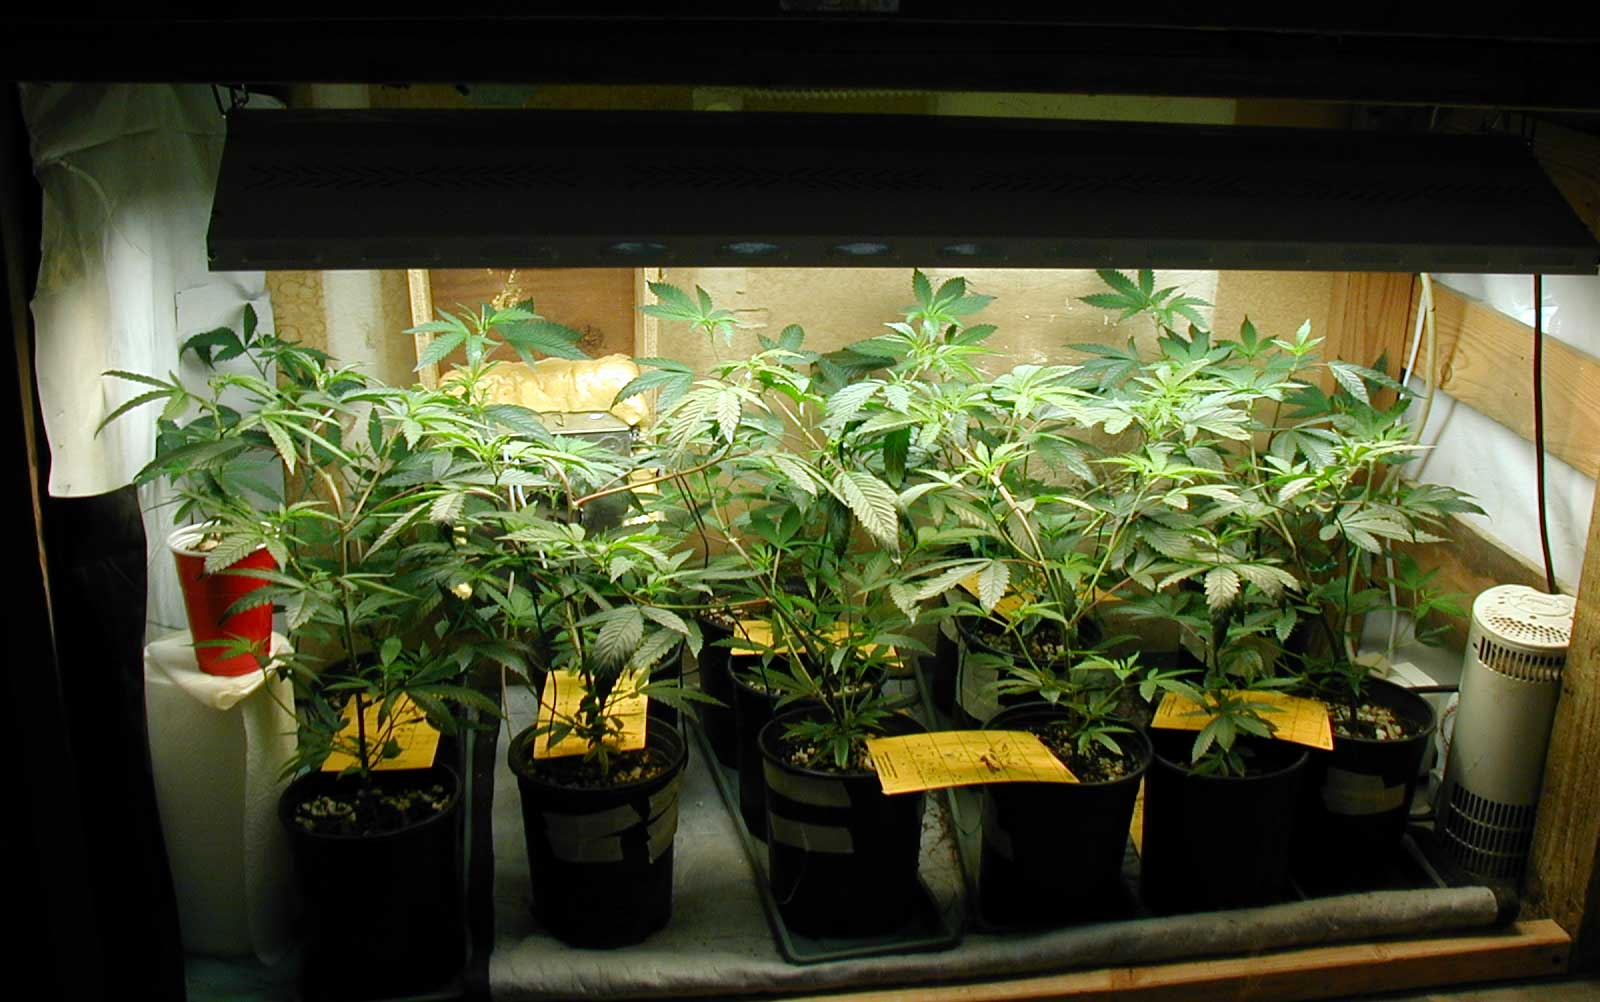 The Perpetual Harvest How To Grow Unlimited Weed